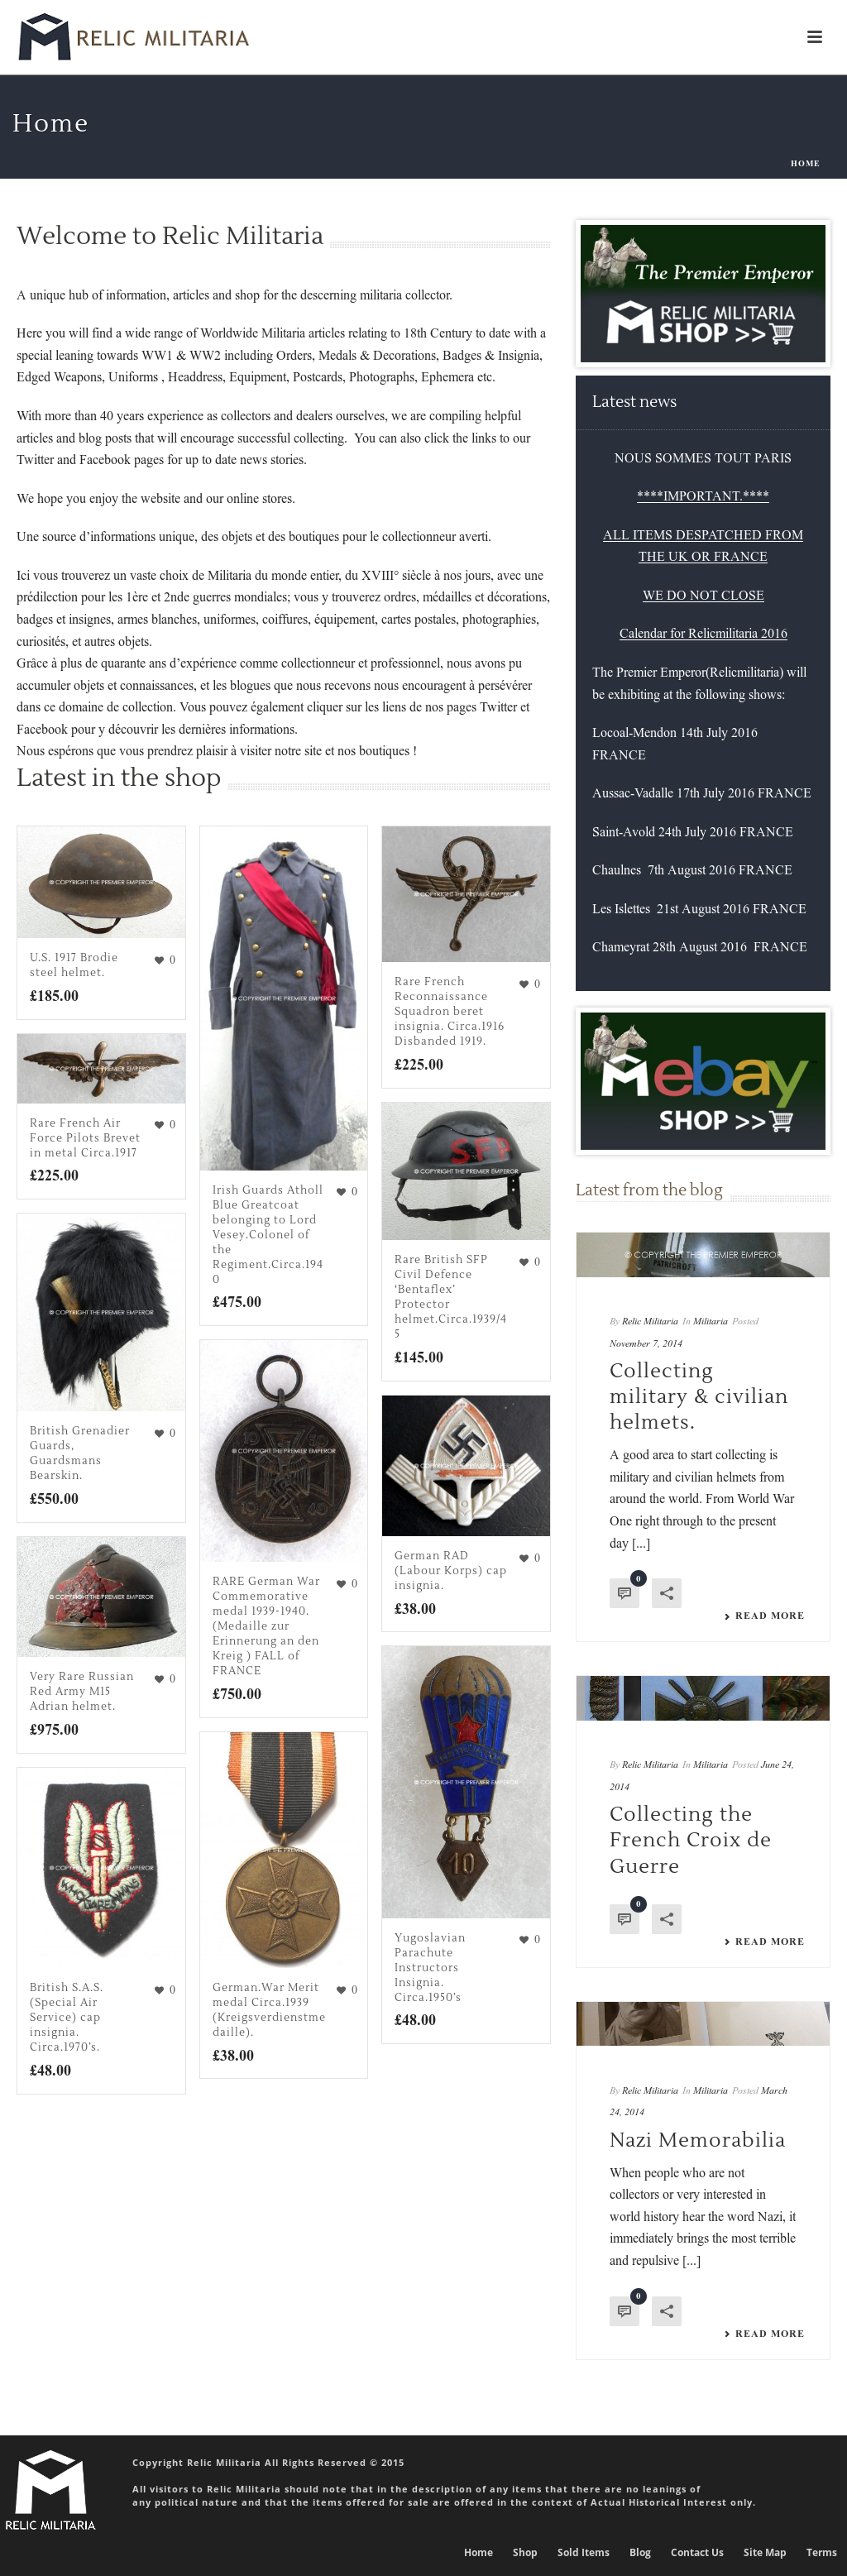 Relic Militaria Competitors, Revenue and Employees - Owler Company